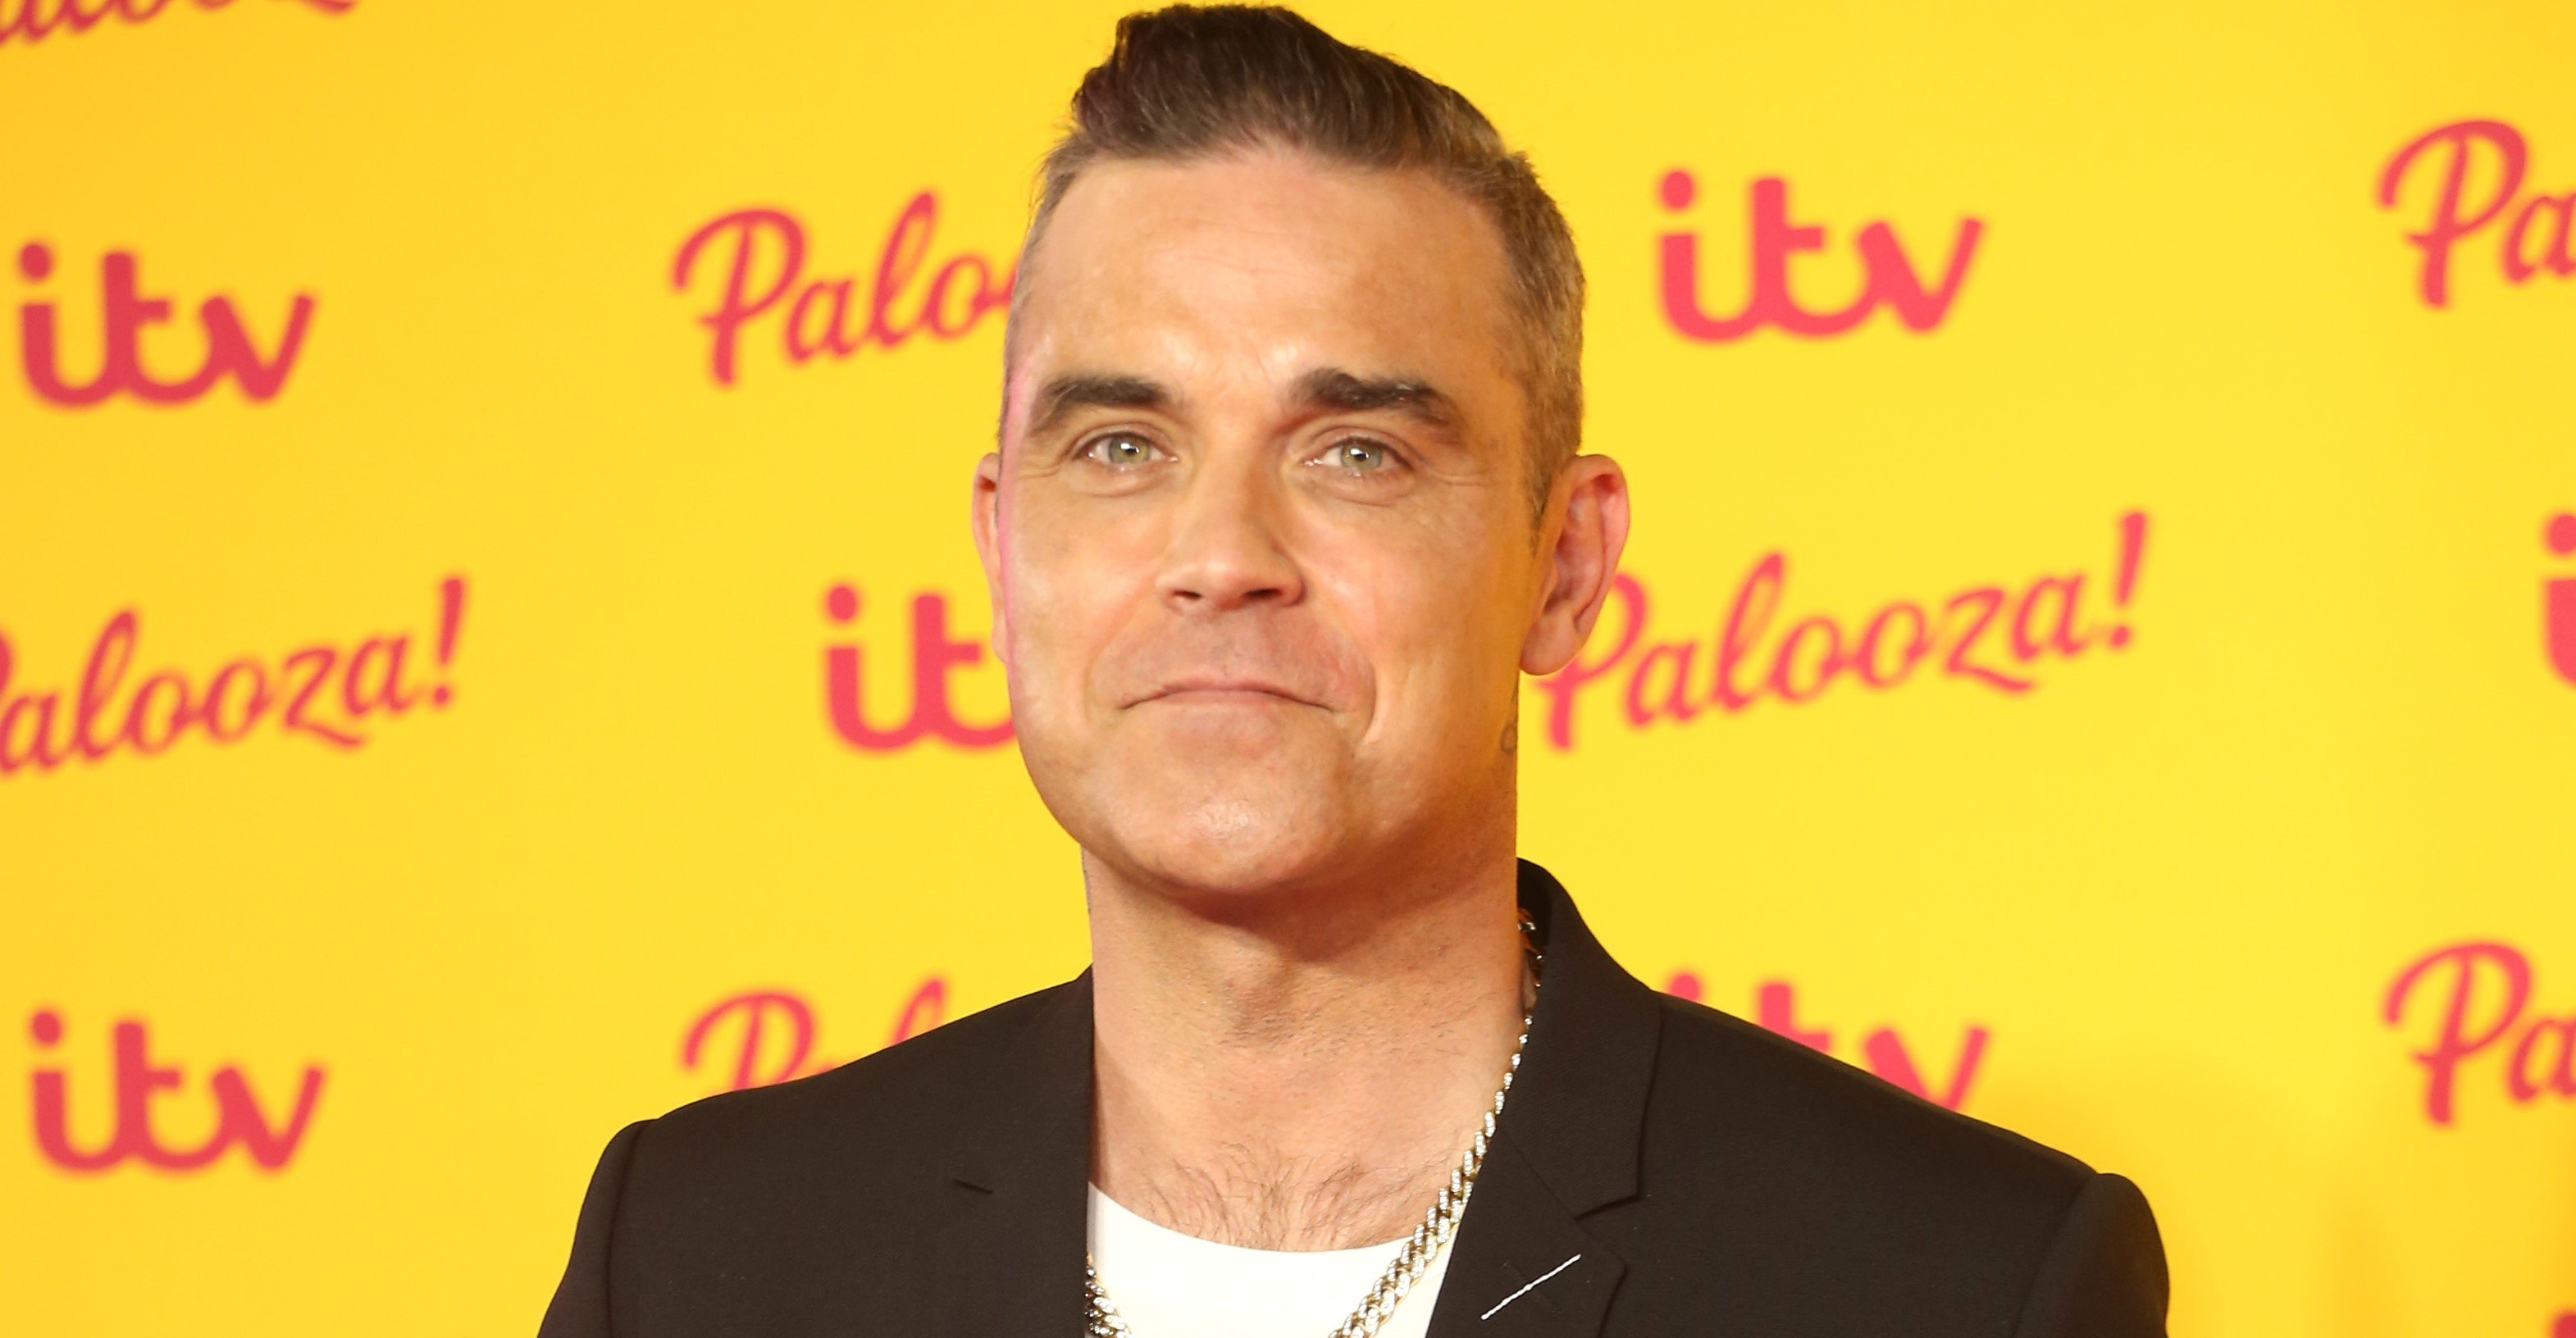 Robbie Williams strips off to reveal something huge